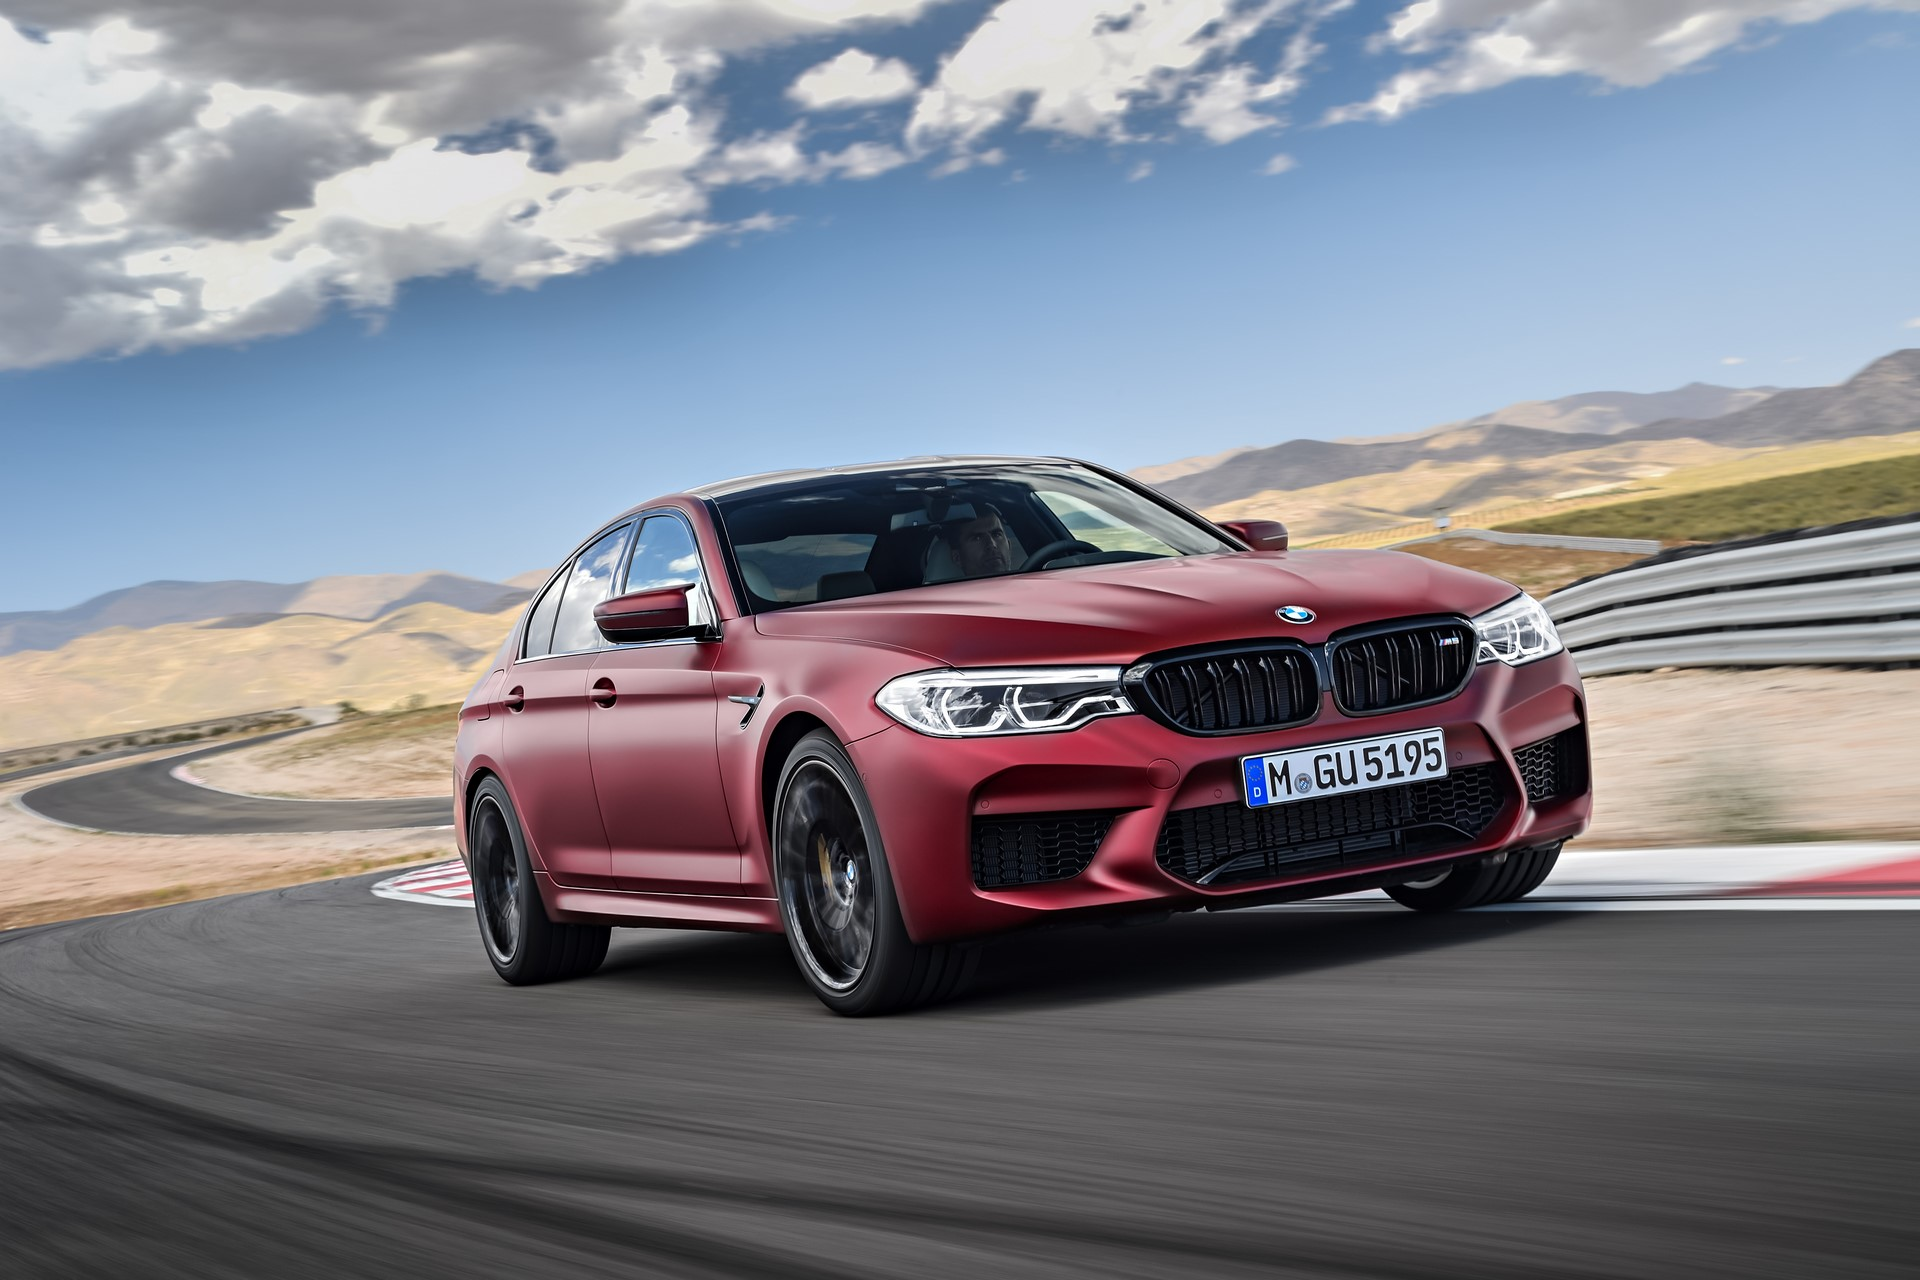 BMW M5 First Edition 2018 (3)